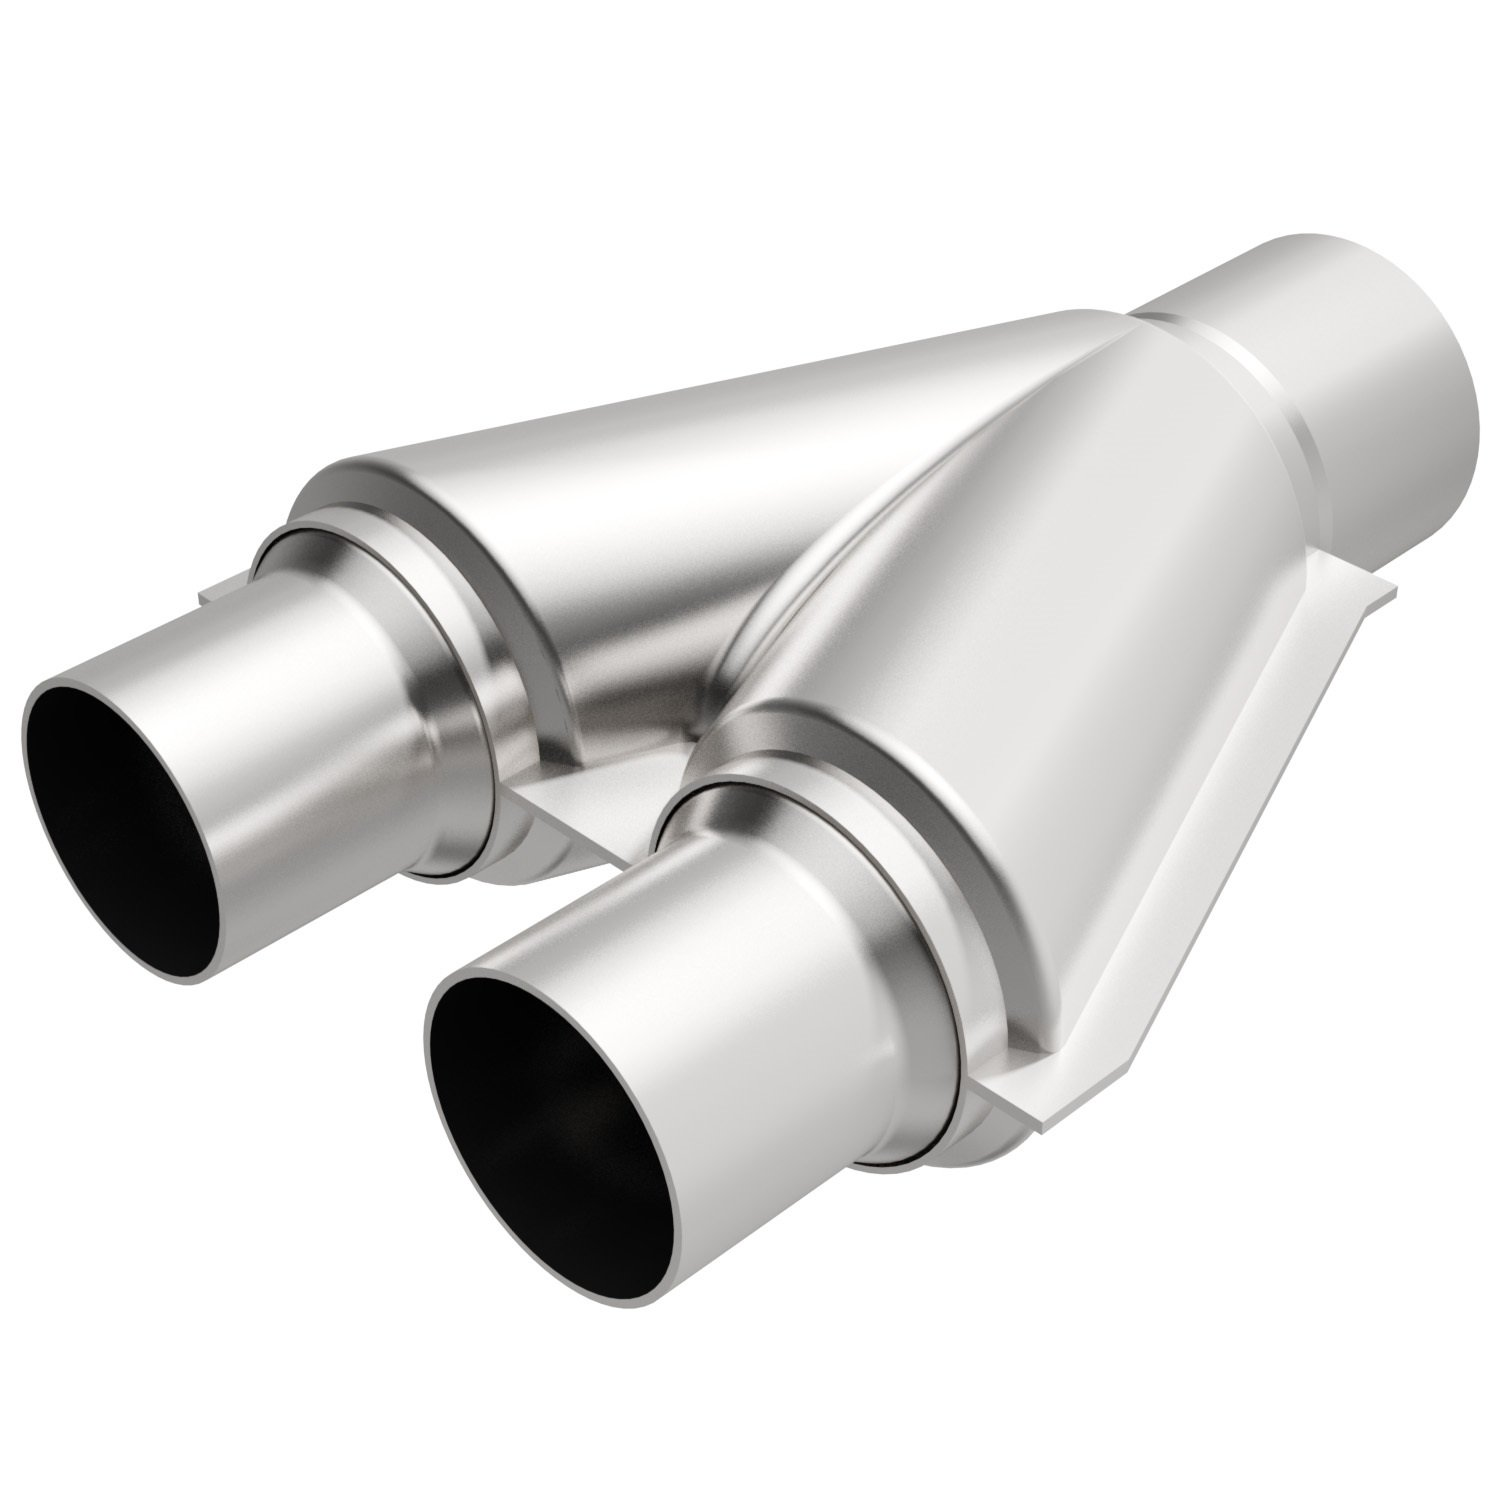 Amazon.com Magnaflow 10758 Stainless Steel 2.5  Exhaust Y-Pipe Automotive  sc 1 st  Amazon.com : exhaust adapter pipe - www.happyfamilyinstitute.com